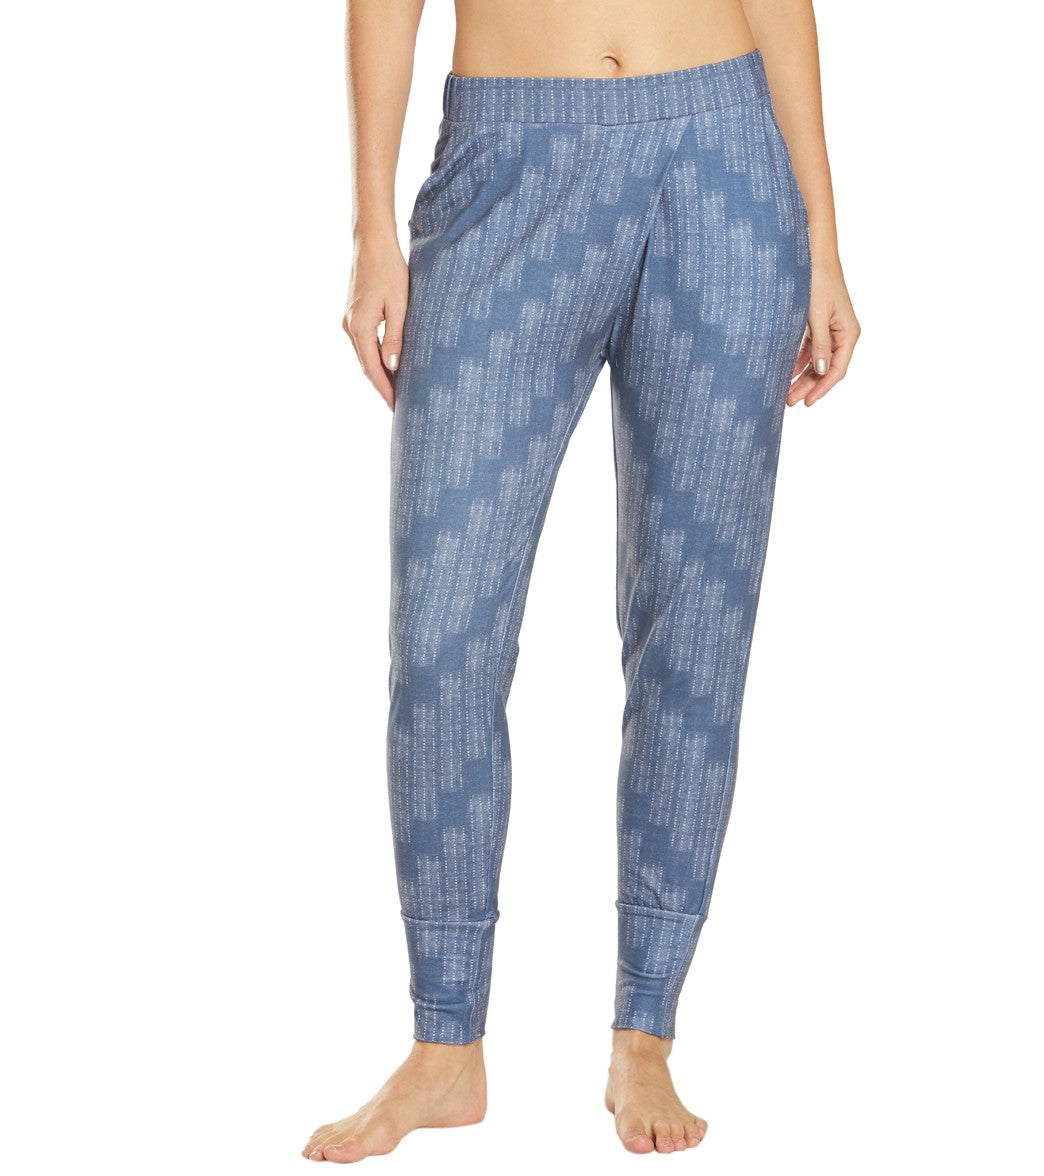 prAna On The Road Pants - Cocoa Cotton Moisture Wicking